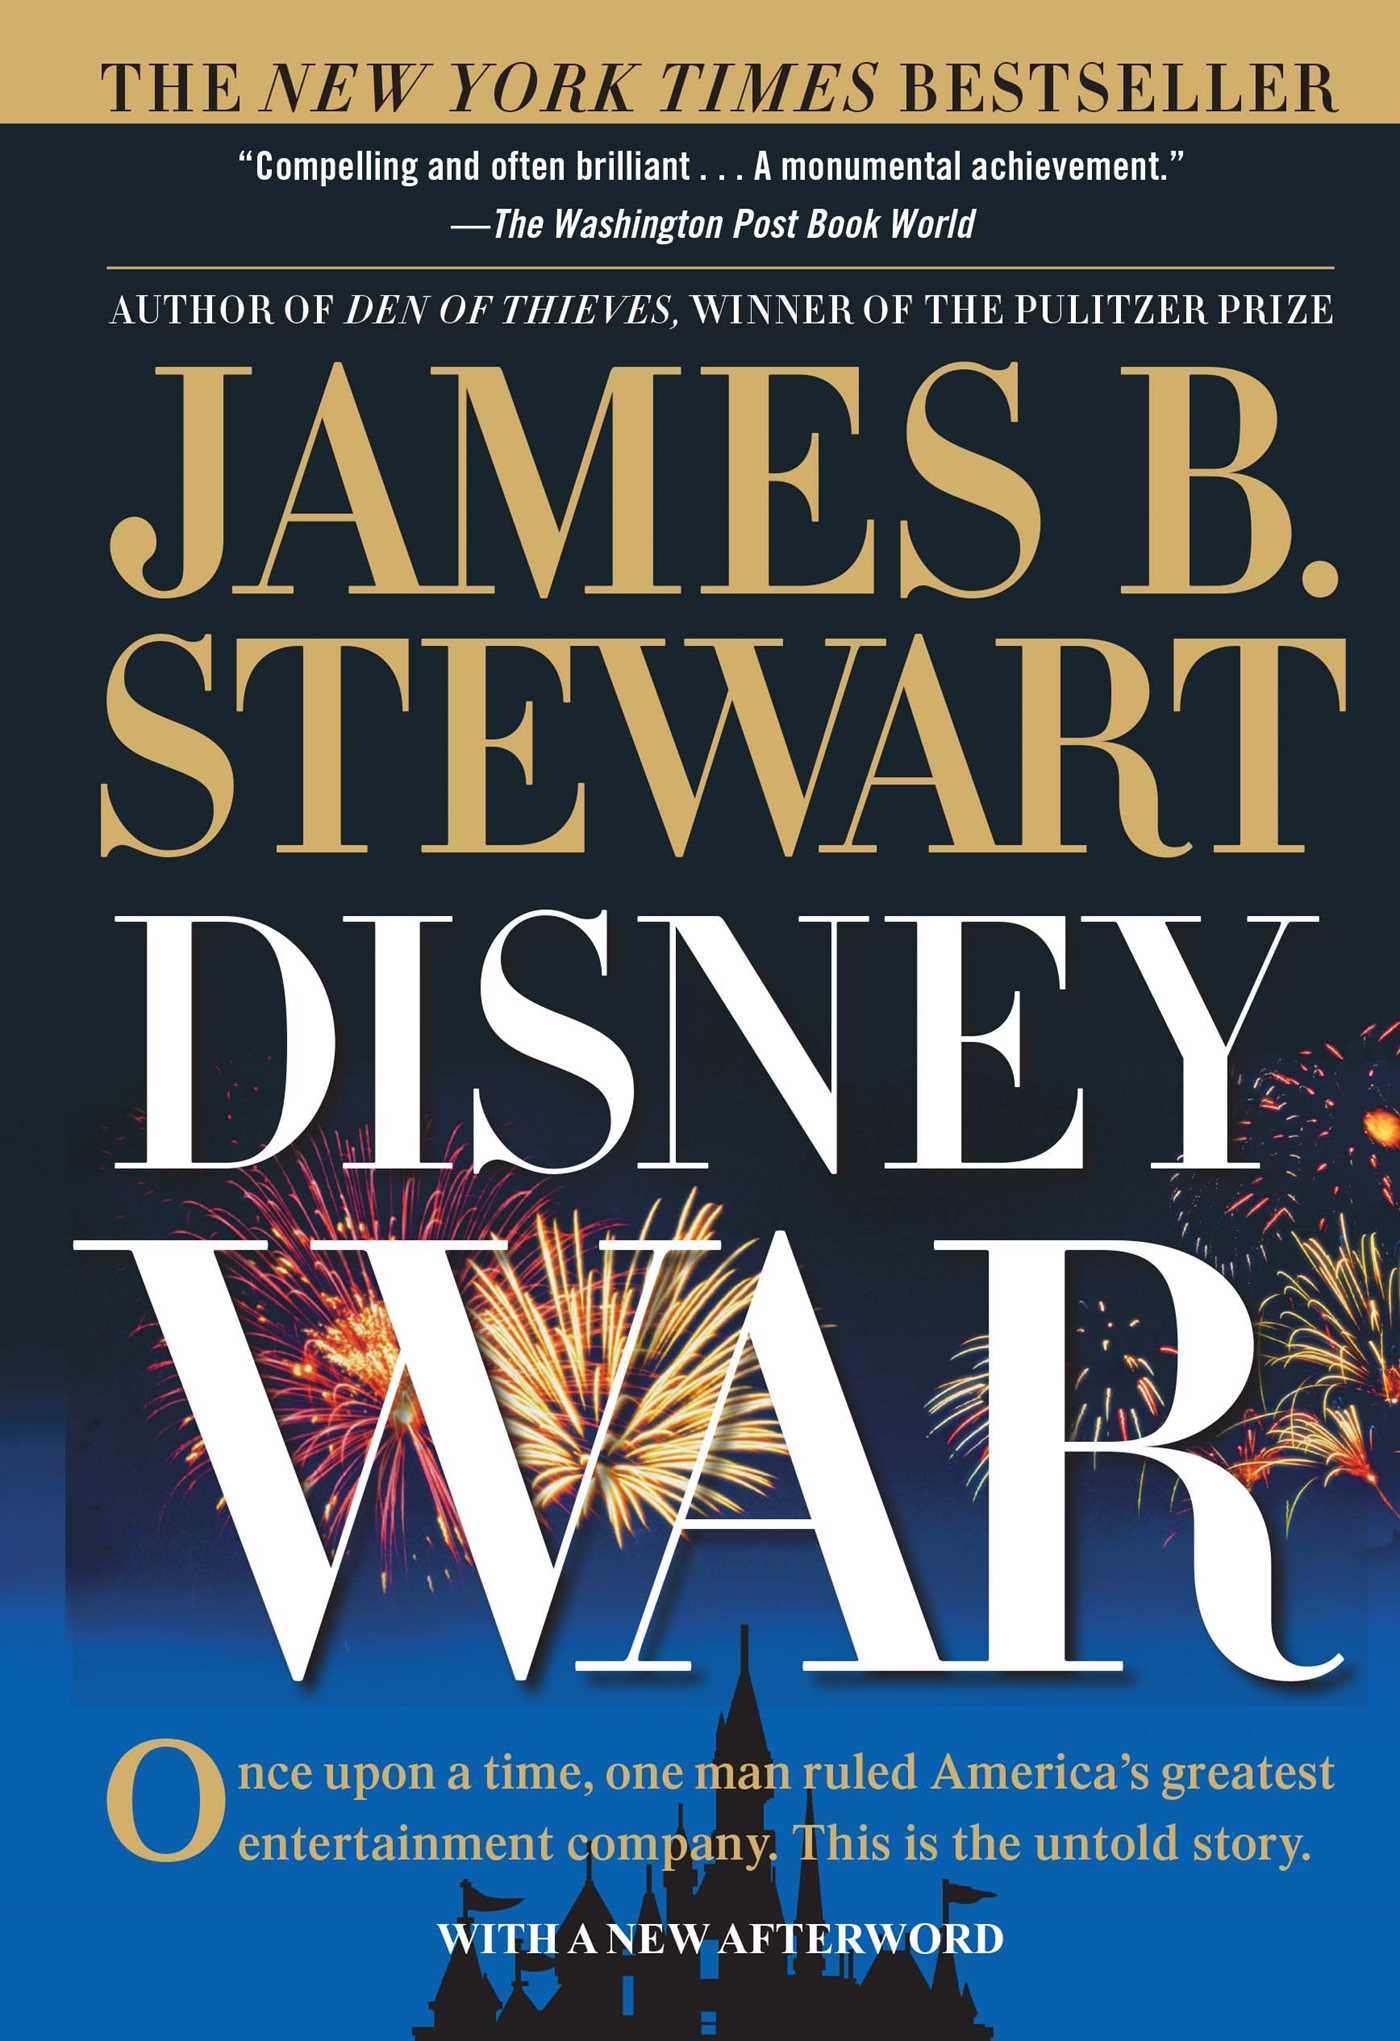 Disneywar 9780743267090 hr